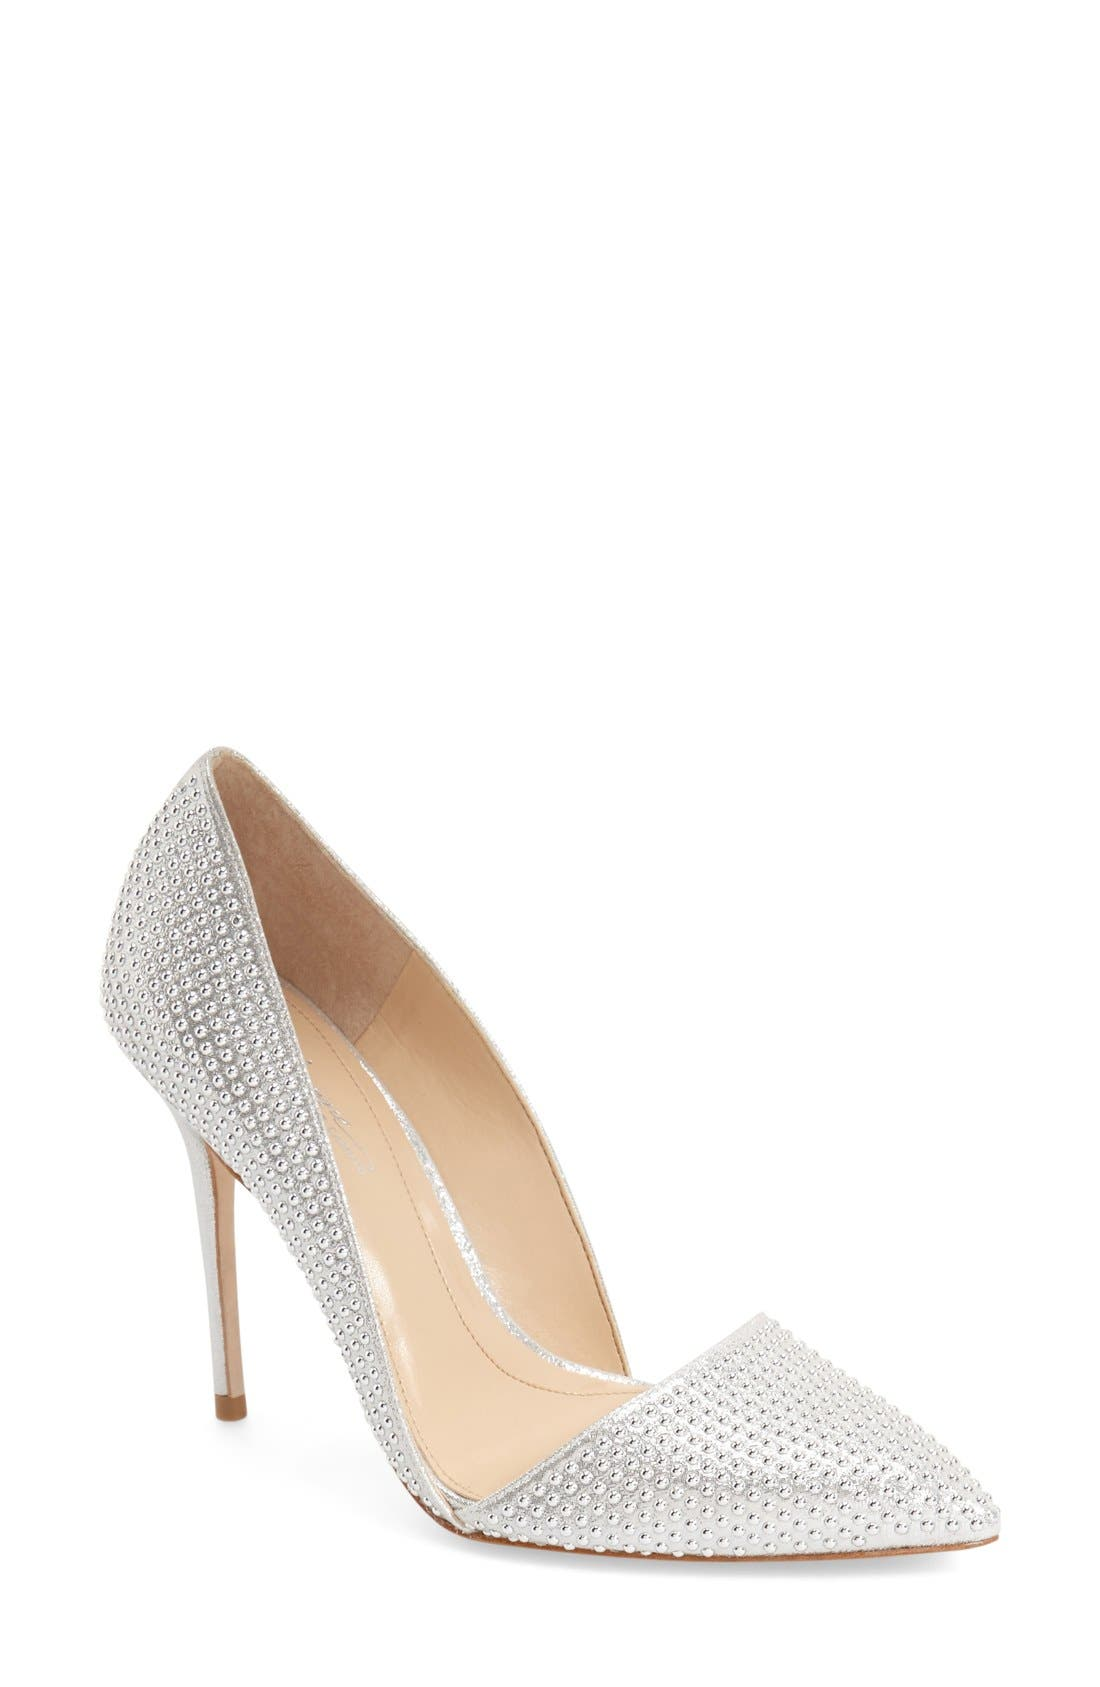 Imagine Vince Camuto 'Ossie' d'Orsay Pump (Women)